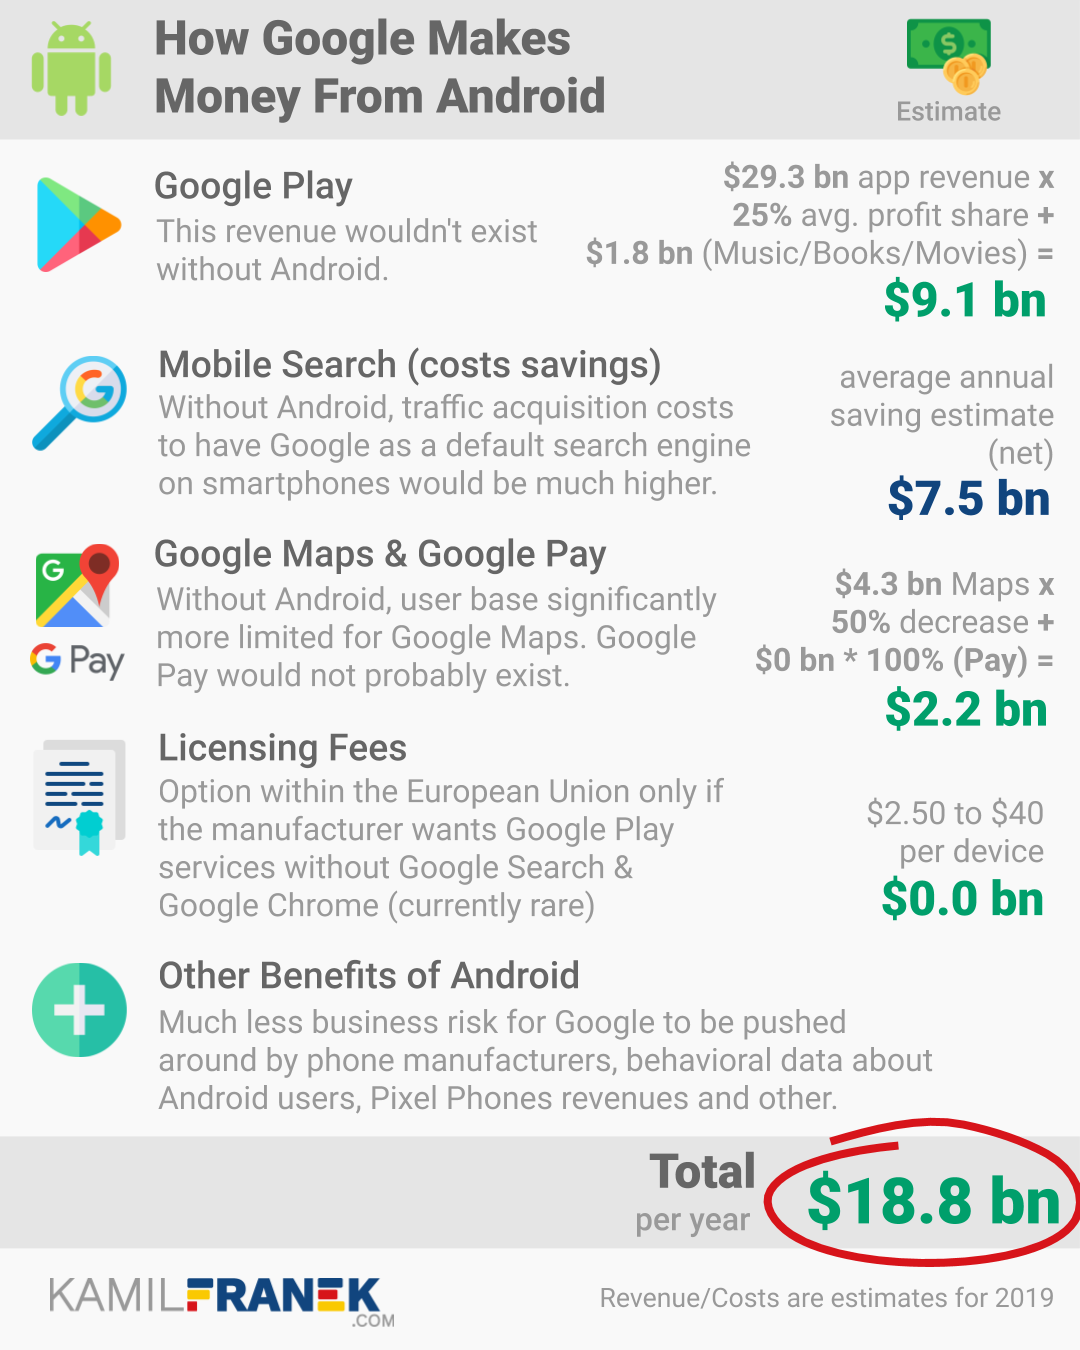 Infographic with break down of how Google makes money from Android with revenue estimate for its core business models